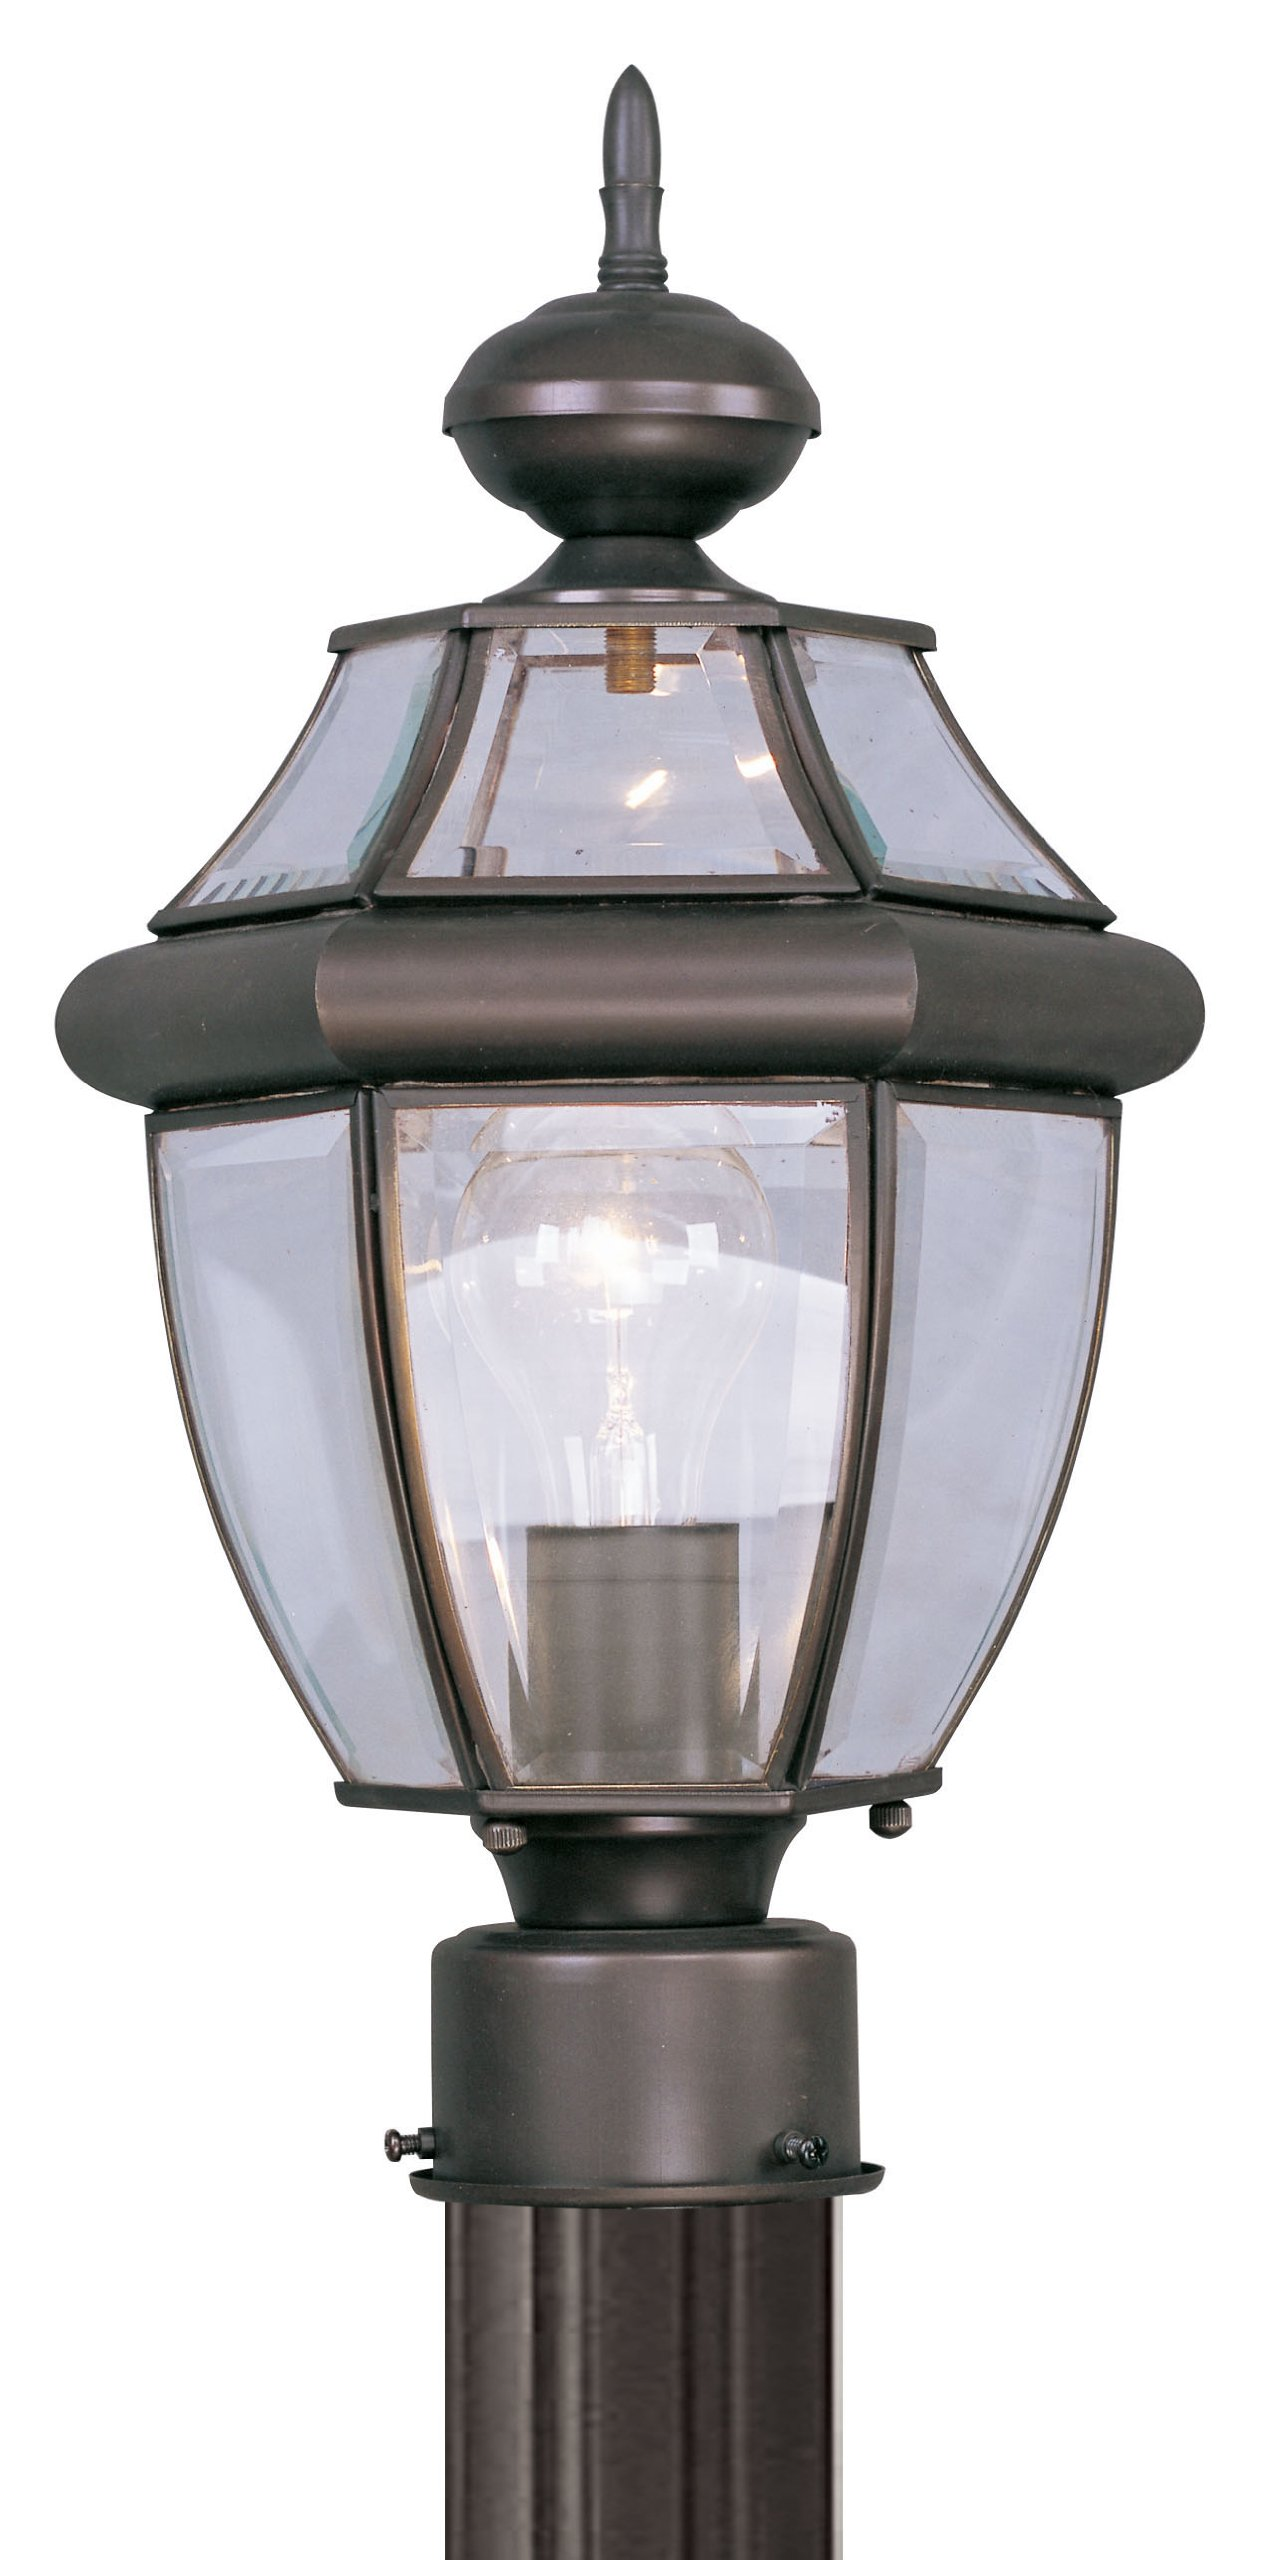 Livex Lighting 2153-07 Outdoor Post with Clear Beveled Glass Shades, Bronze